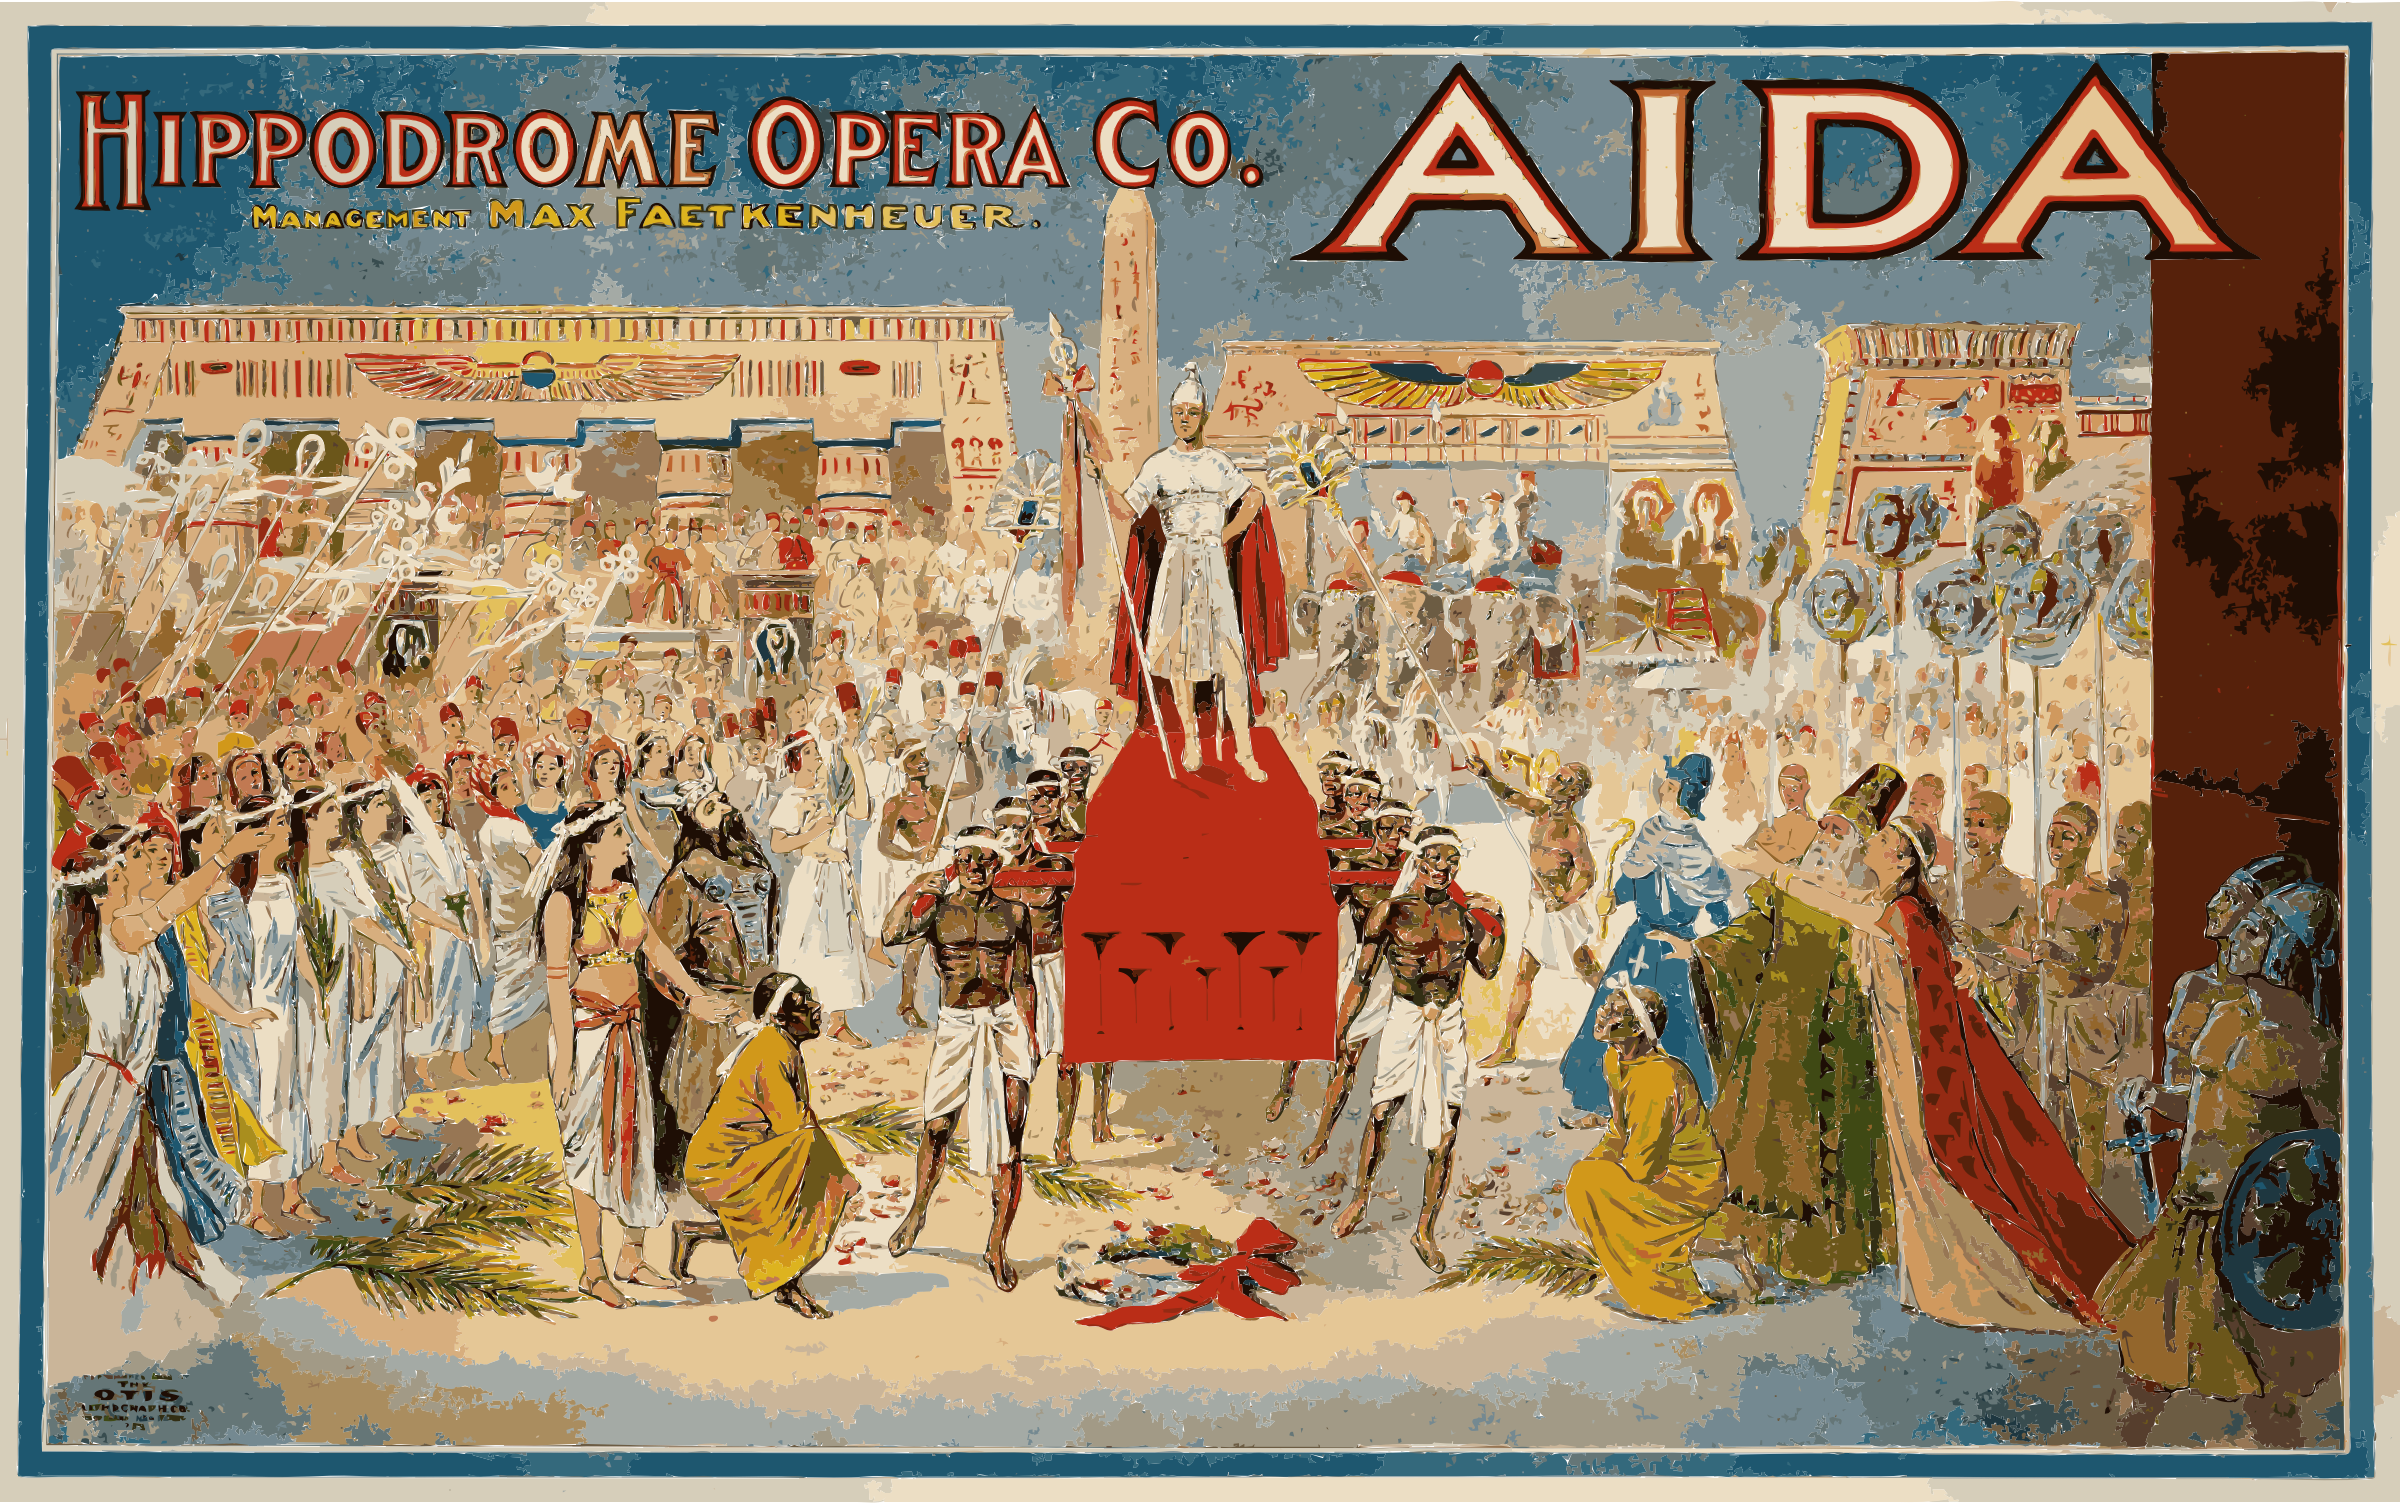 Aida poster colors fixed by 3w8x8j+ekad9if2mkux4